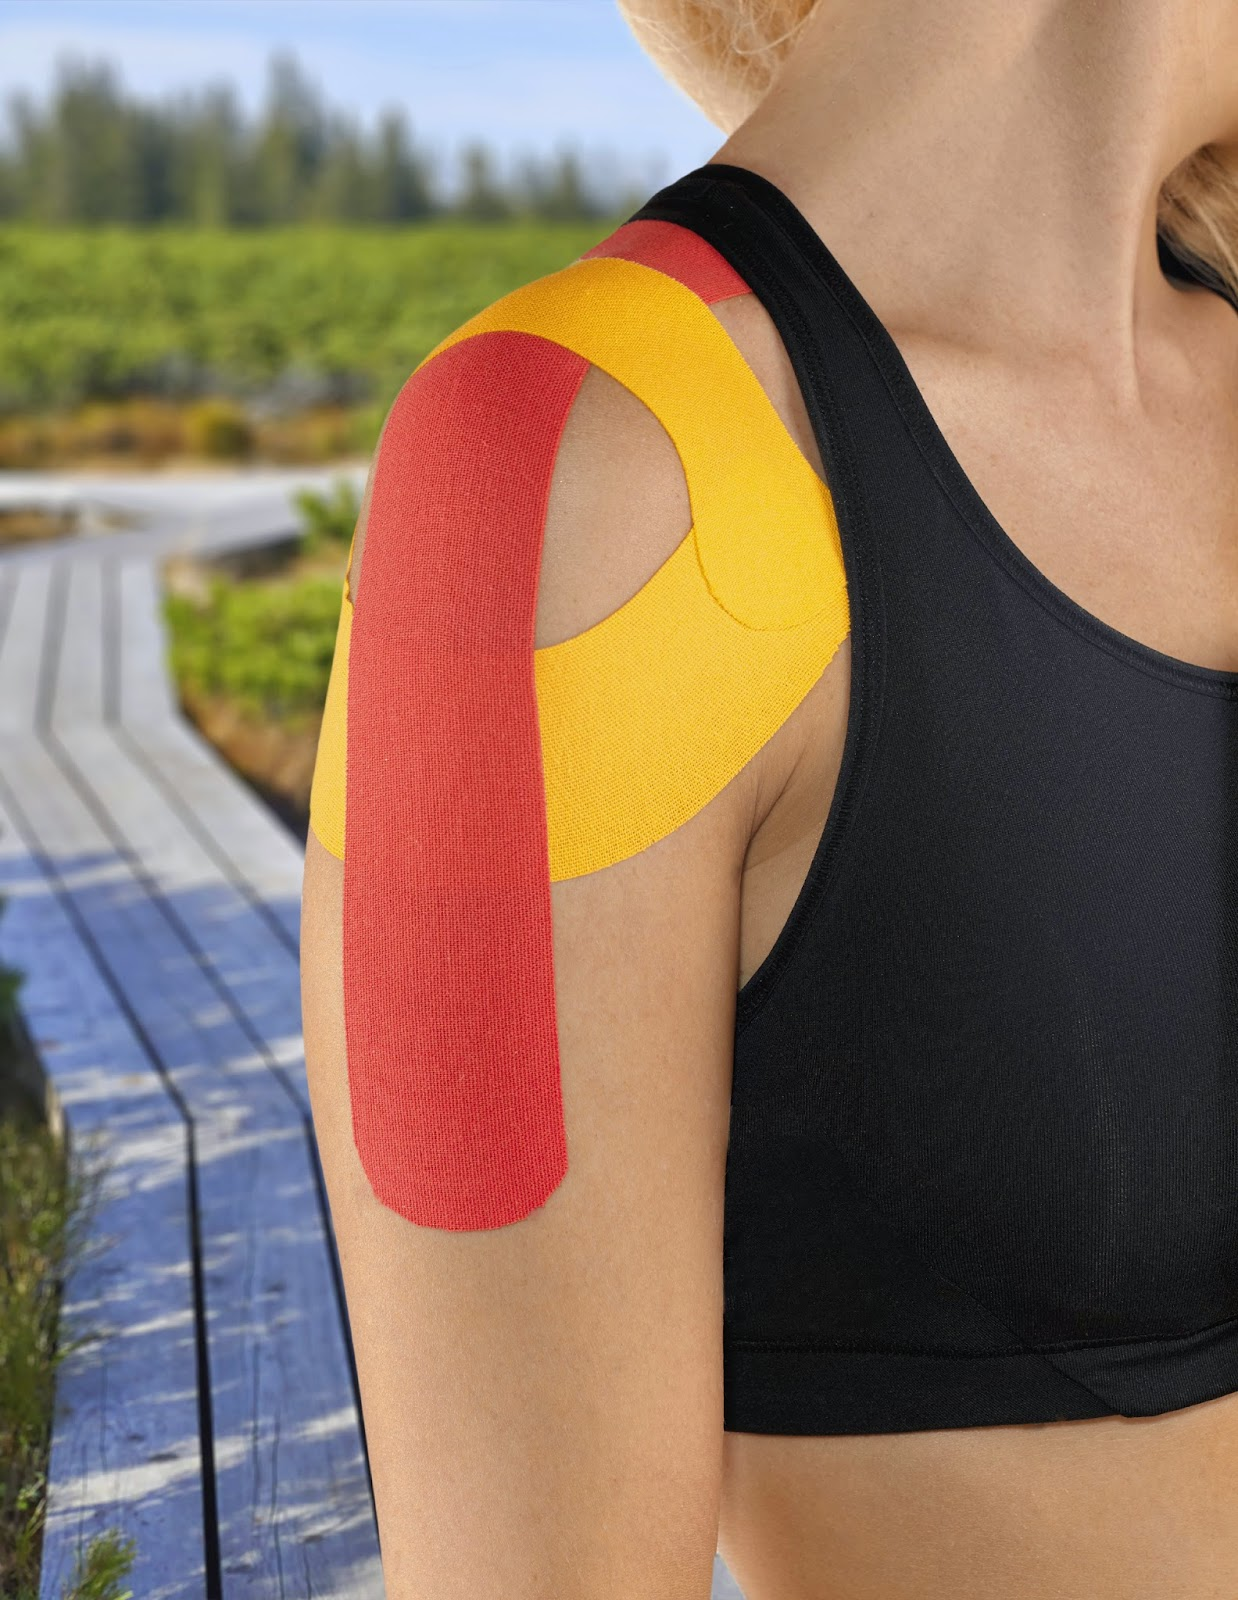 Taping to prevent or treat injury - Academy Massage Therapy - Massage Therapists - Winnipeg, Manitoba